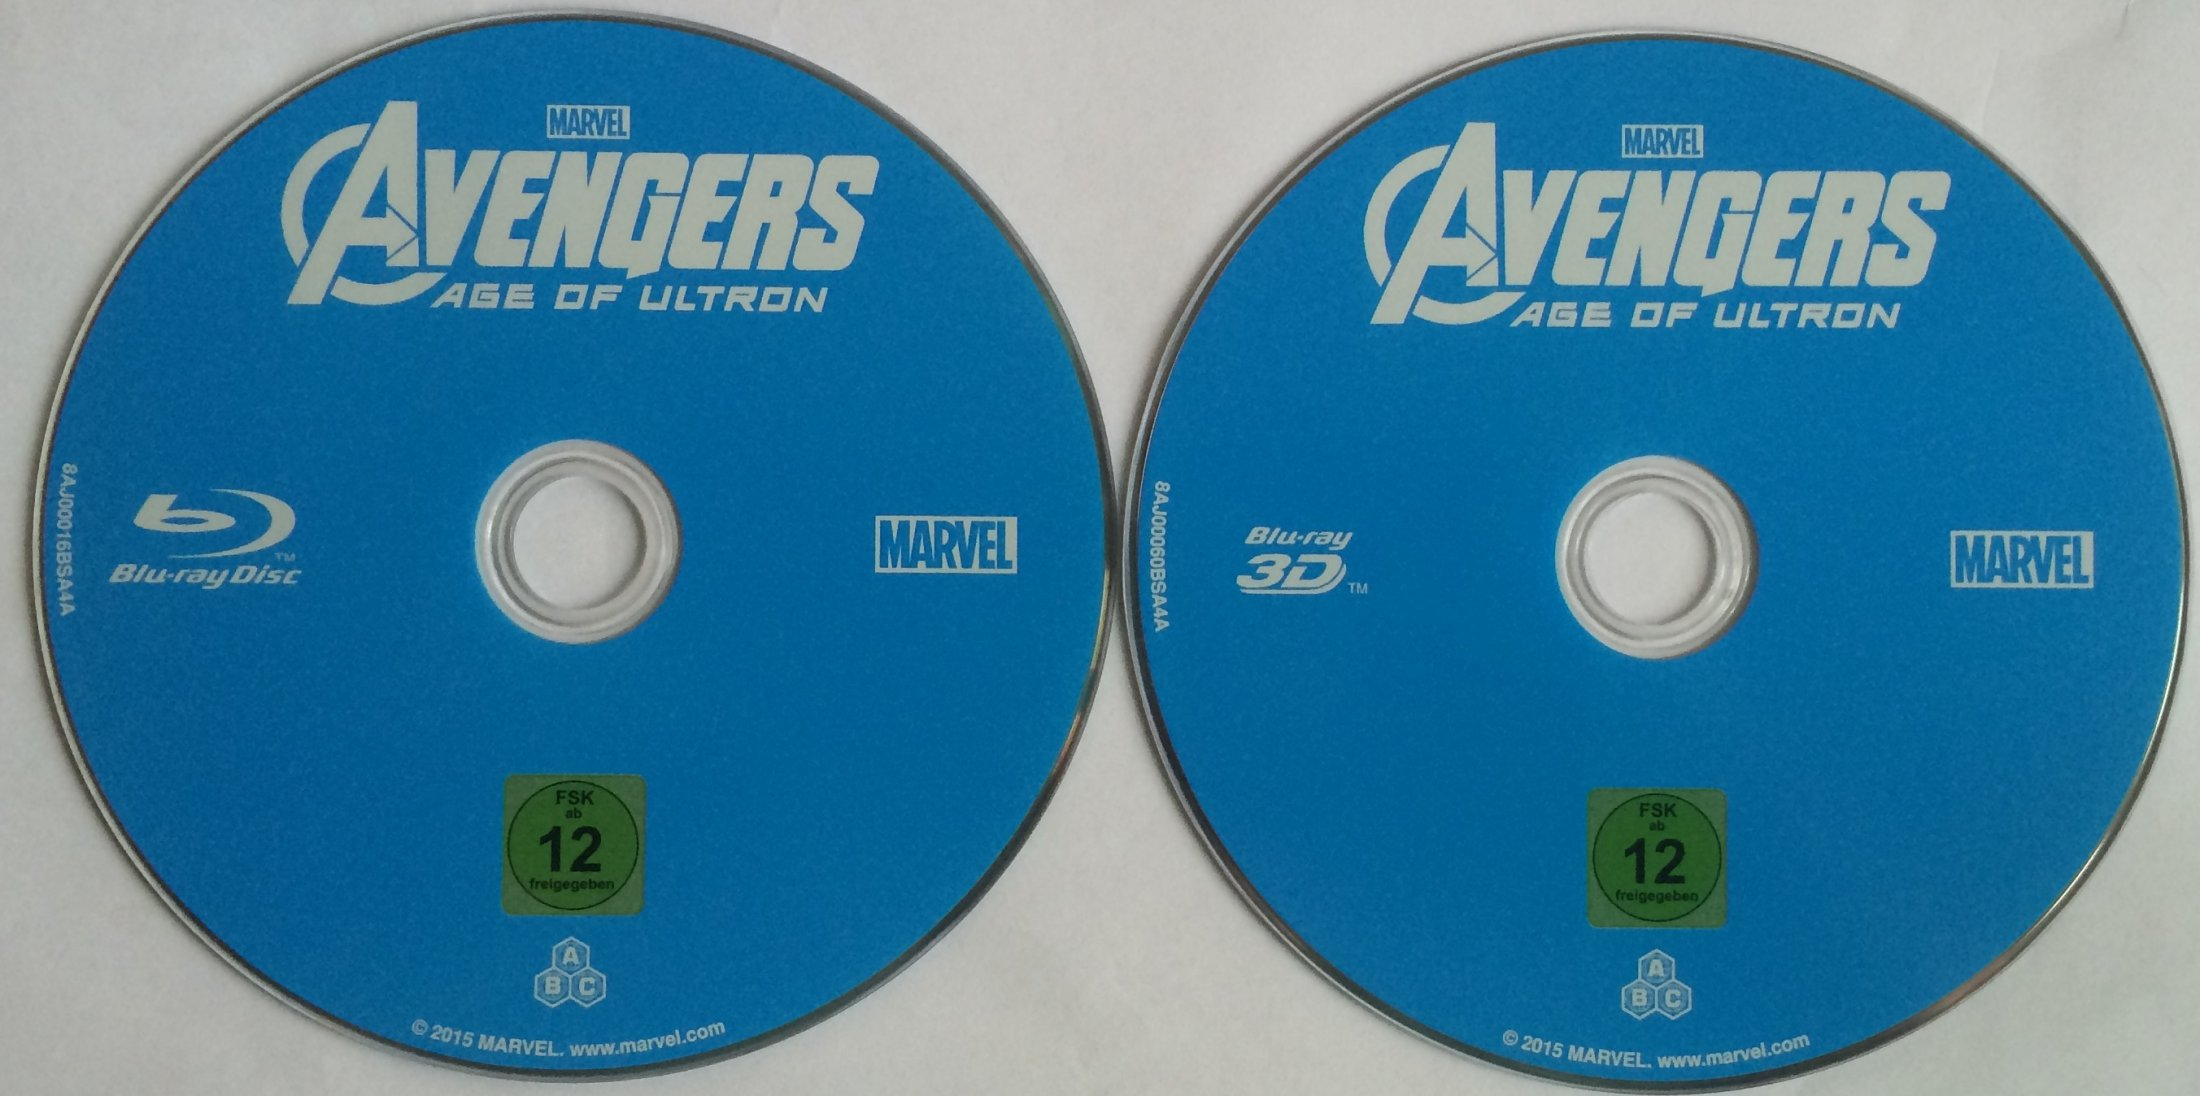 Avengers Age of Ultron Disks